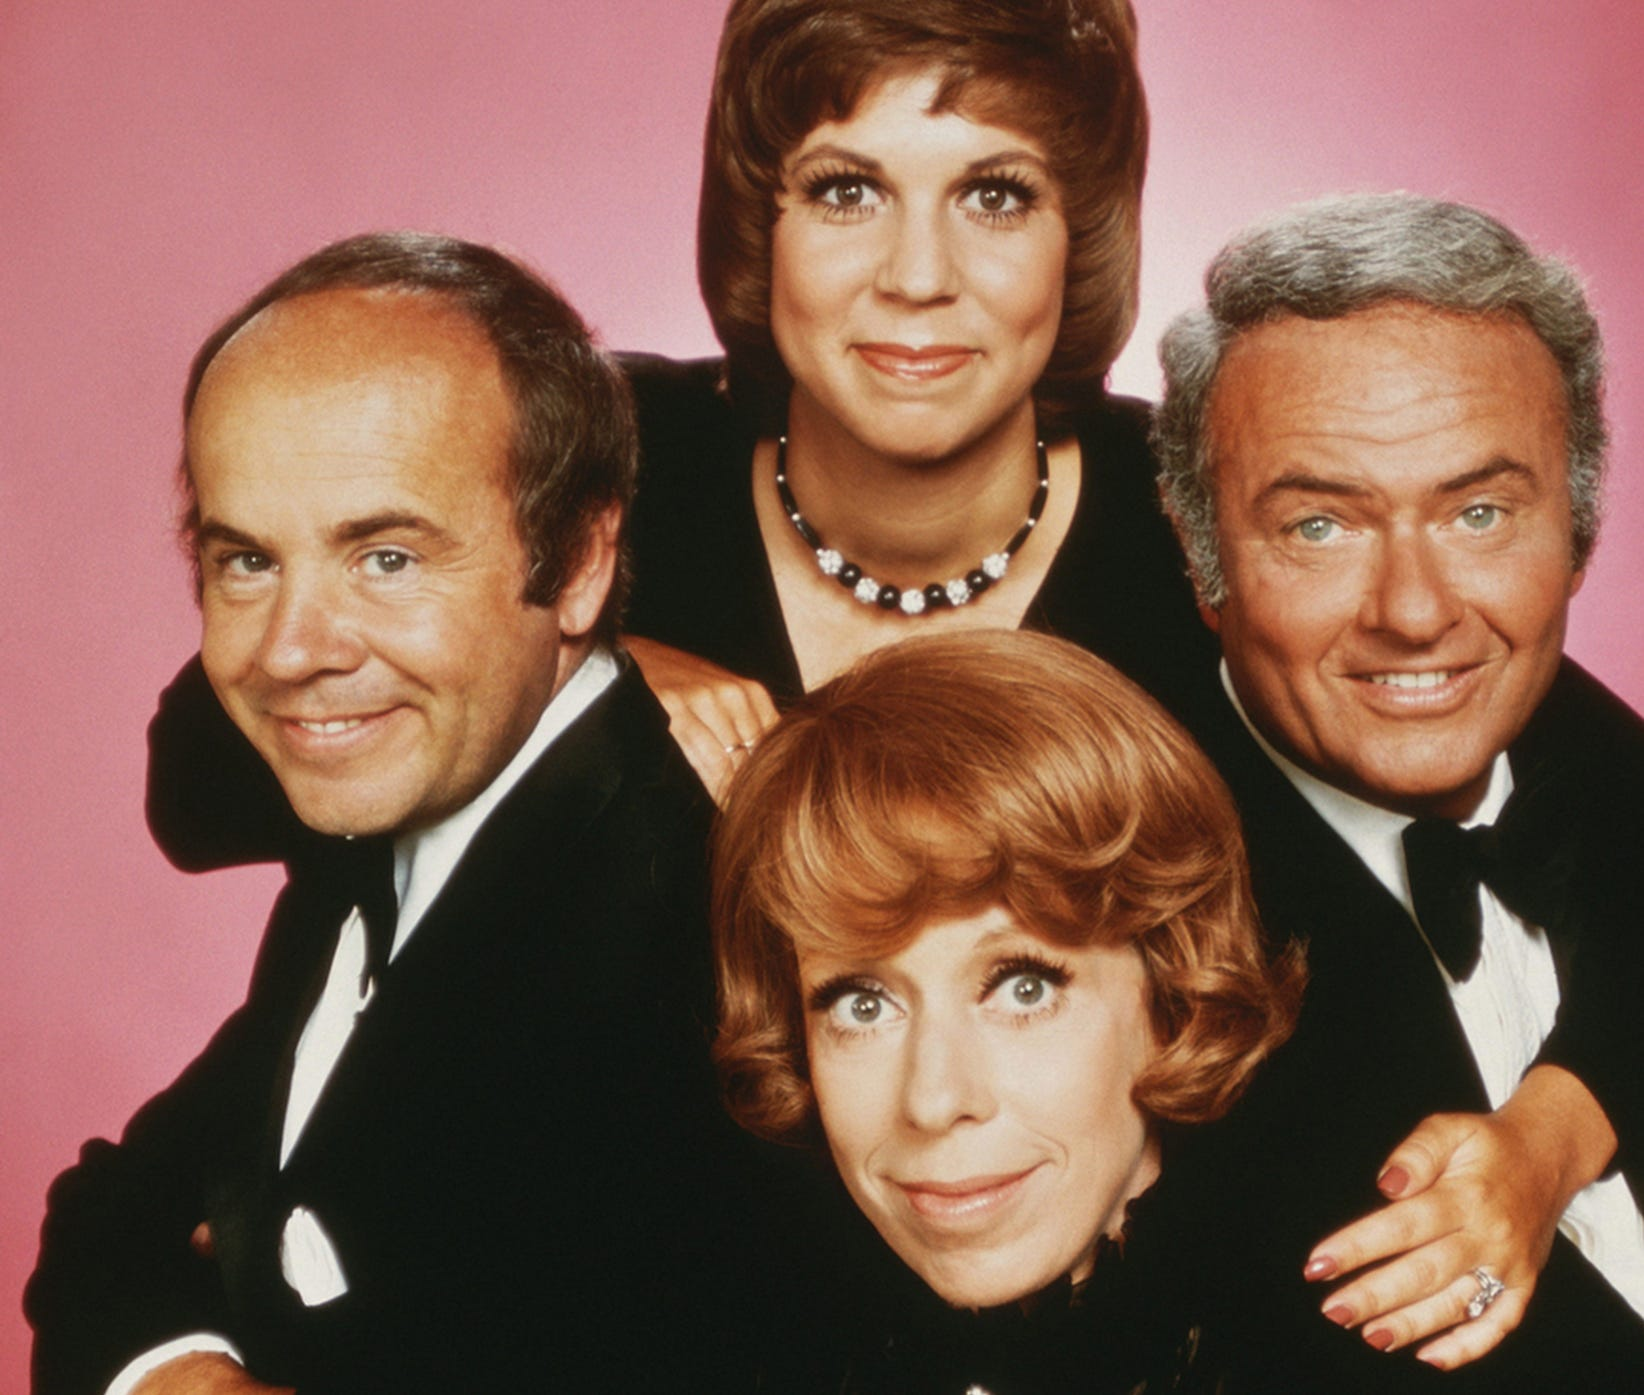 """Tim Conway, star of """"The Carol Burnett Show,"""" has died at 85, according to his publiscist. Conway, left, is shown with Vicki Lawrence, top, Harvey Korman and Carol Burnett.."""